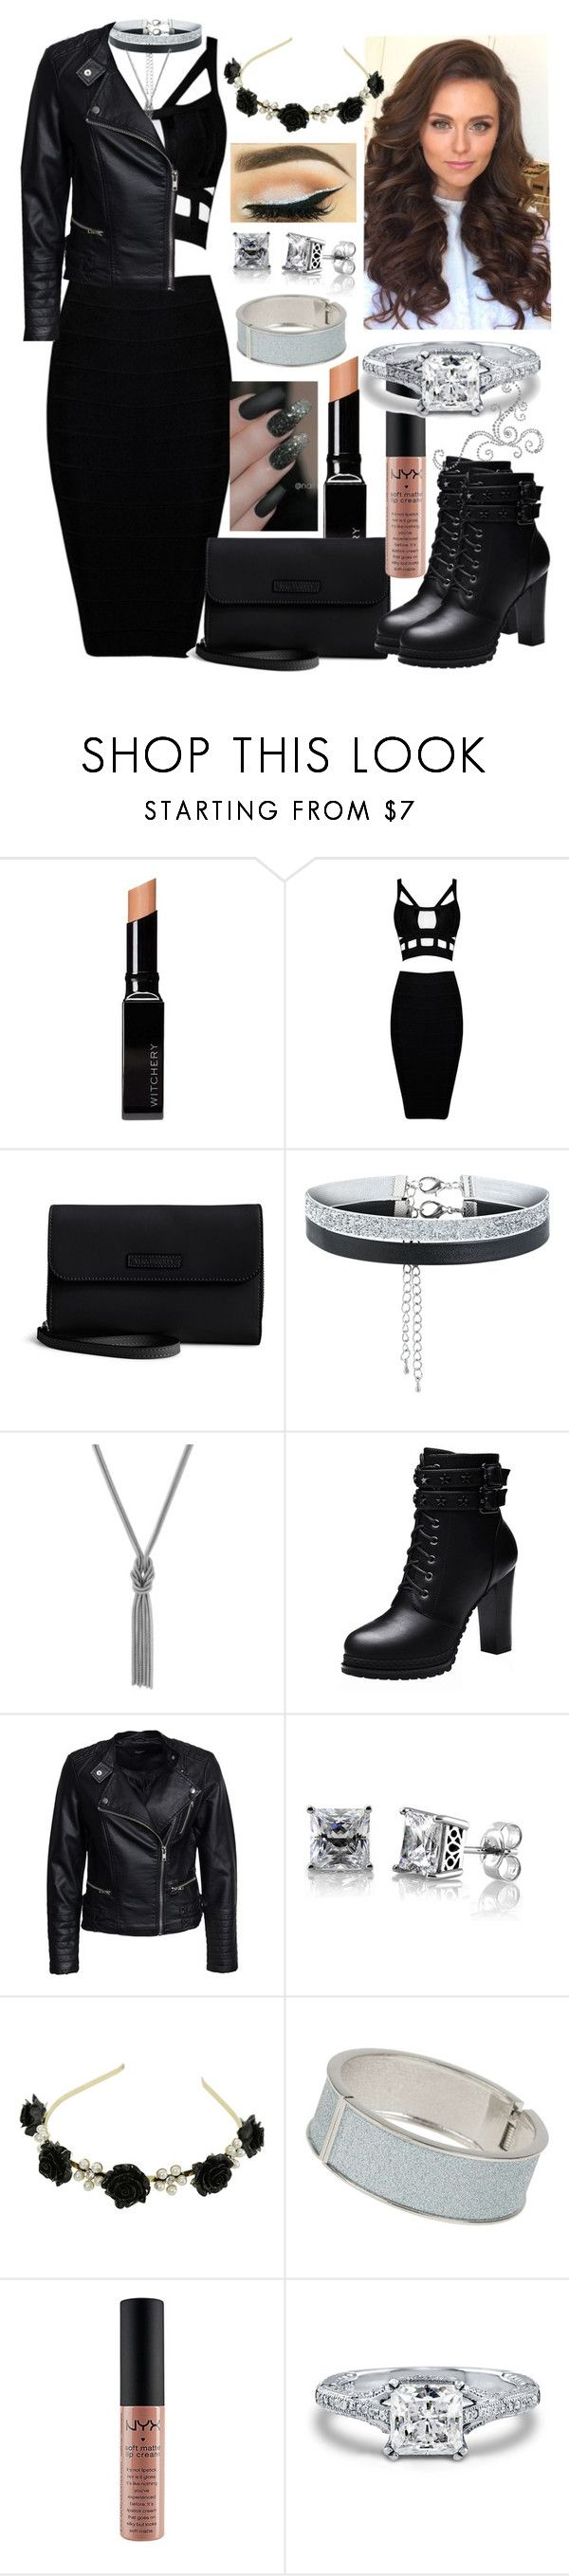 """""""Pree Day: The Black Edition"""" by thea-bleasdille ❤ liked on Polyvore featuring Witchery, Vera Bradley, New Look, BCBGeneration, Sisters Point, BERRICLE, Dorothy Perkins, NYX, grenada and 3rdAug"""